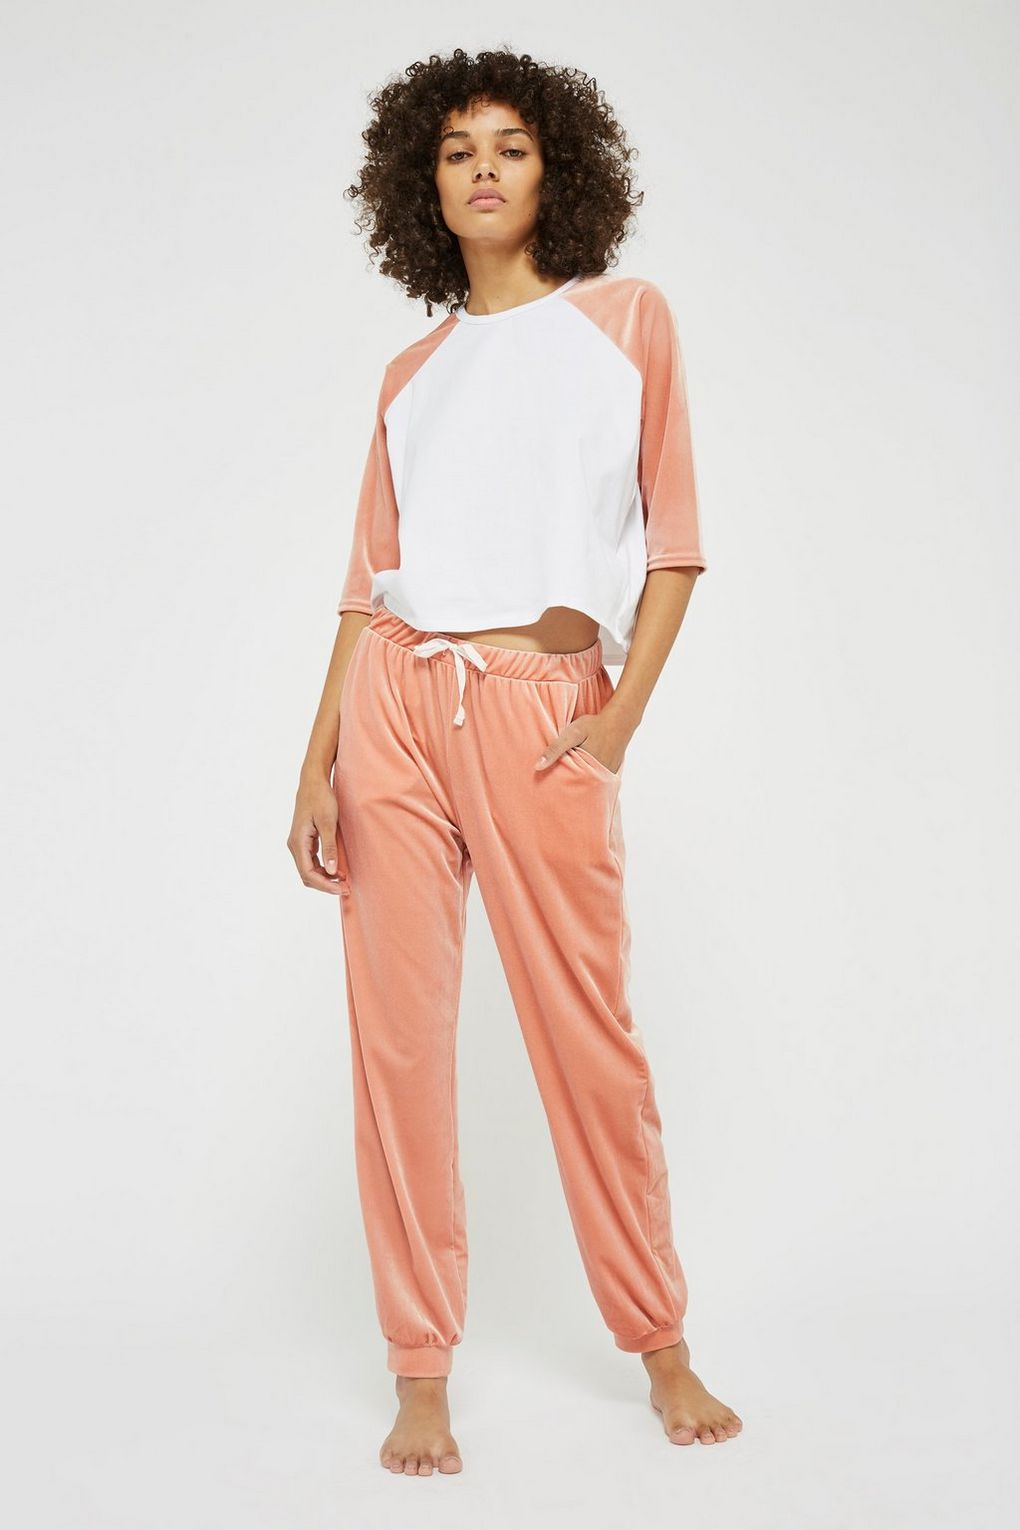 SL1391 Ex Chainstore Velour Raglan Top And Joggers Pjs Set x10